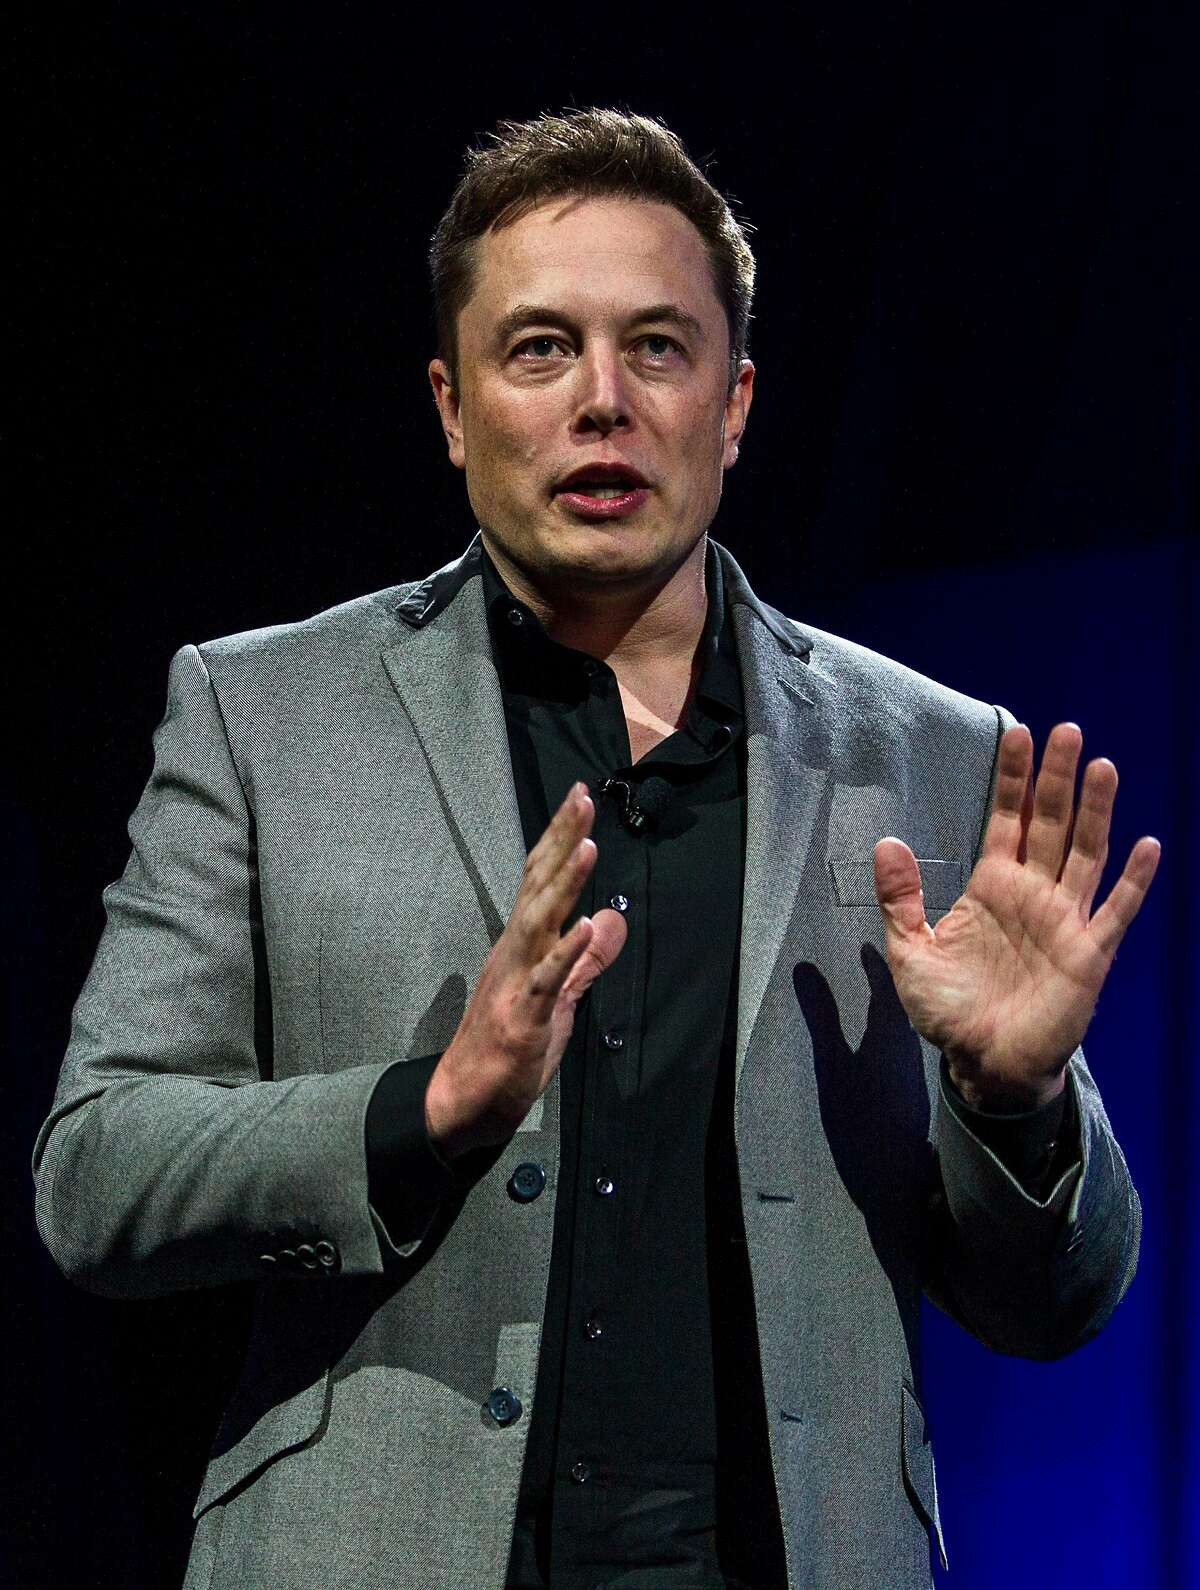 Elon Musk, CEO of Tesla Motors Inc., unveils the company's newest products, Powerwall and Powerpack in Hawthorne, Calif., Thursday, April 30, 2015. Musk is trying to steer his electric car company's battery technology into homes and businesses as part of an elaborate plan to reshape the power grid with millions of small power plants made of solar panels on roofs and batteries in garages. (AP Photo/Ringo H.W. Chiu)